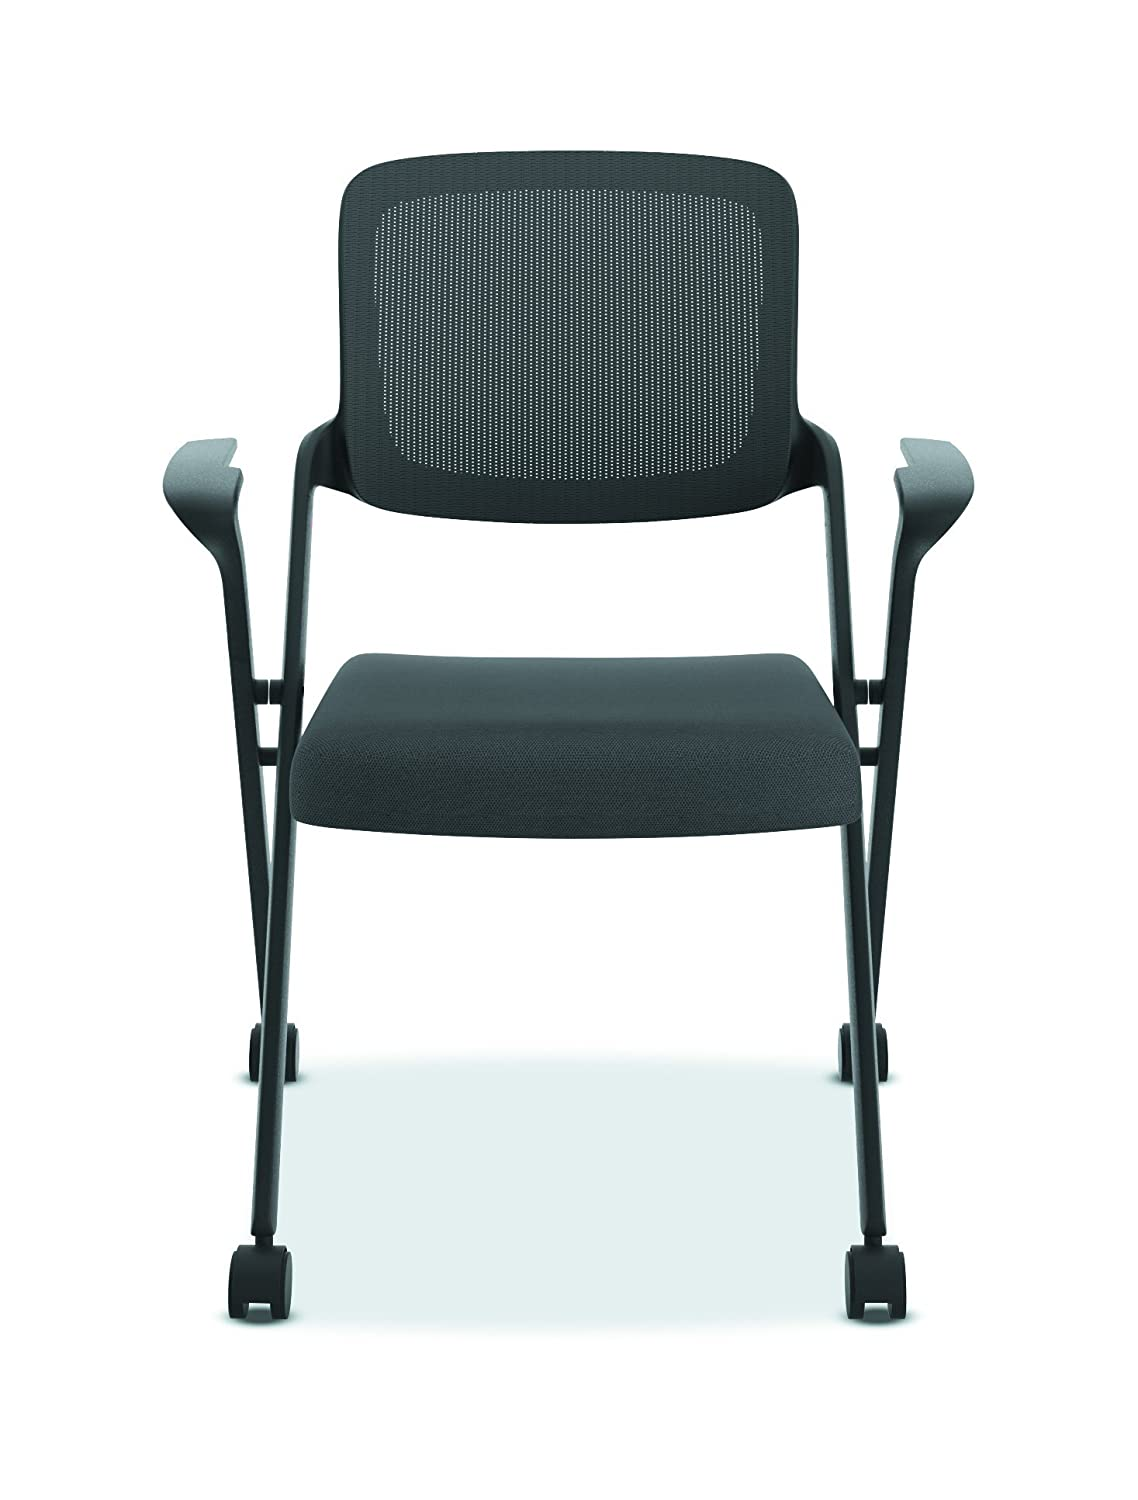 HON Assemble Mesh Back Nesting Chair – Stacking Chairs, Pack of 2